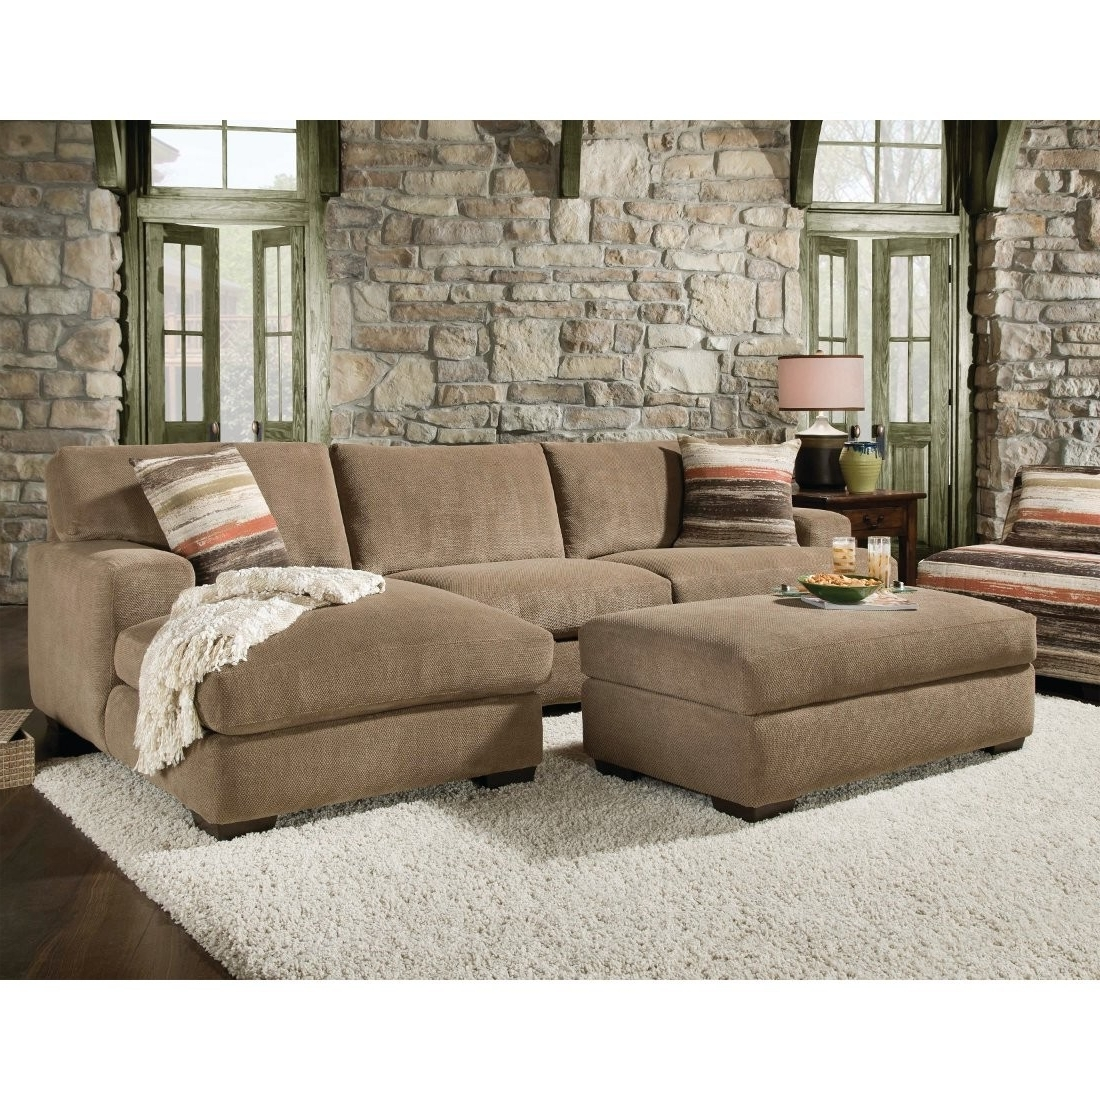 Best And Newest Leather Sectional Sleeper Sofa Sectional Sofas With Recliners And Inside Small Sectional Sofas With Chaise Lounge (View 5 of 15)